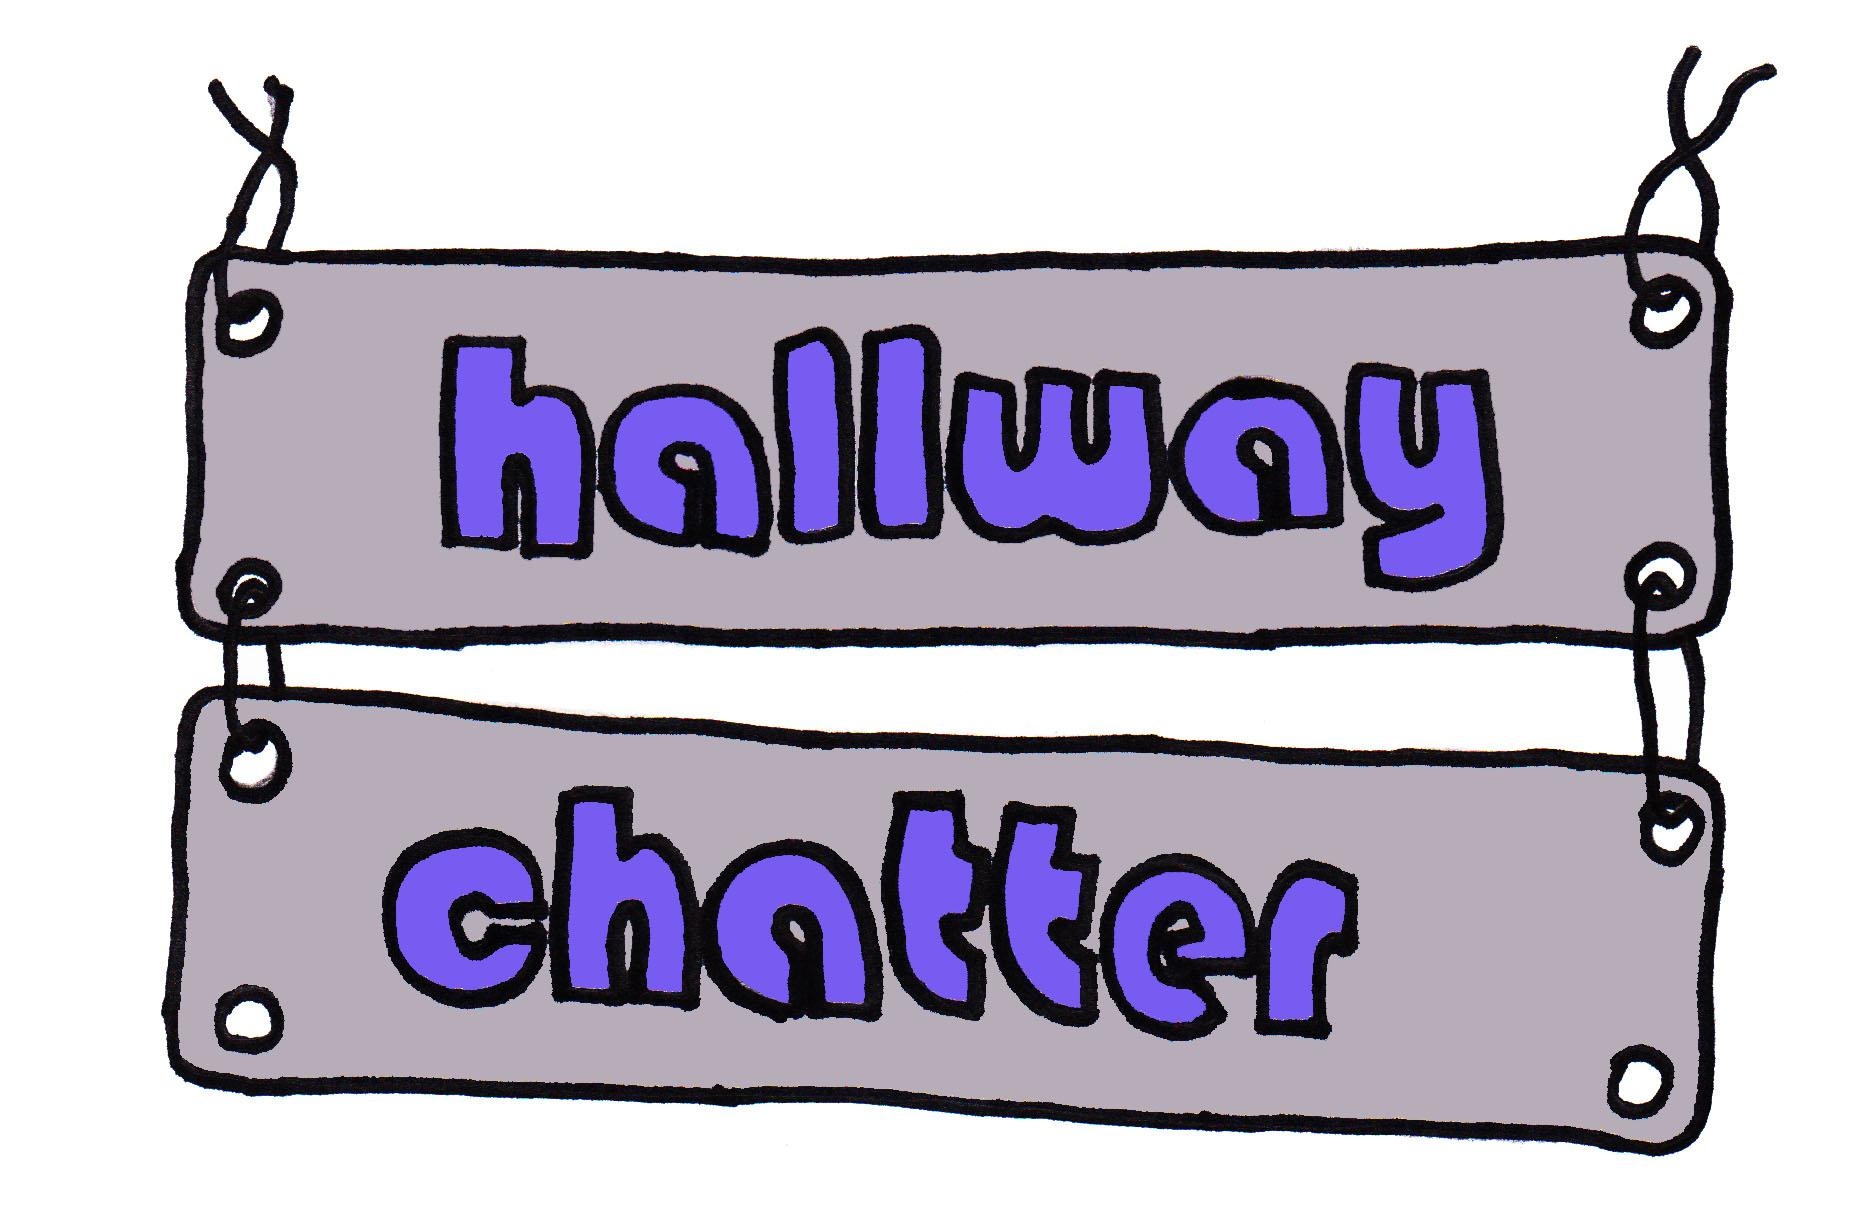 HALLWAY CHATTER: Listen to what students said in the halls.